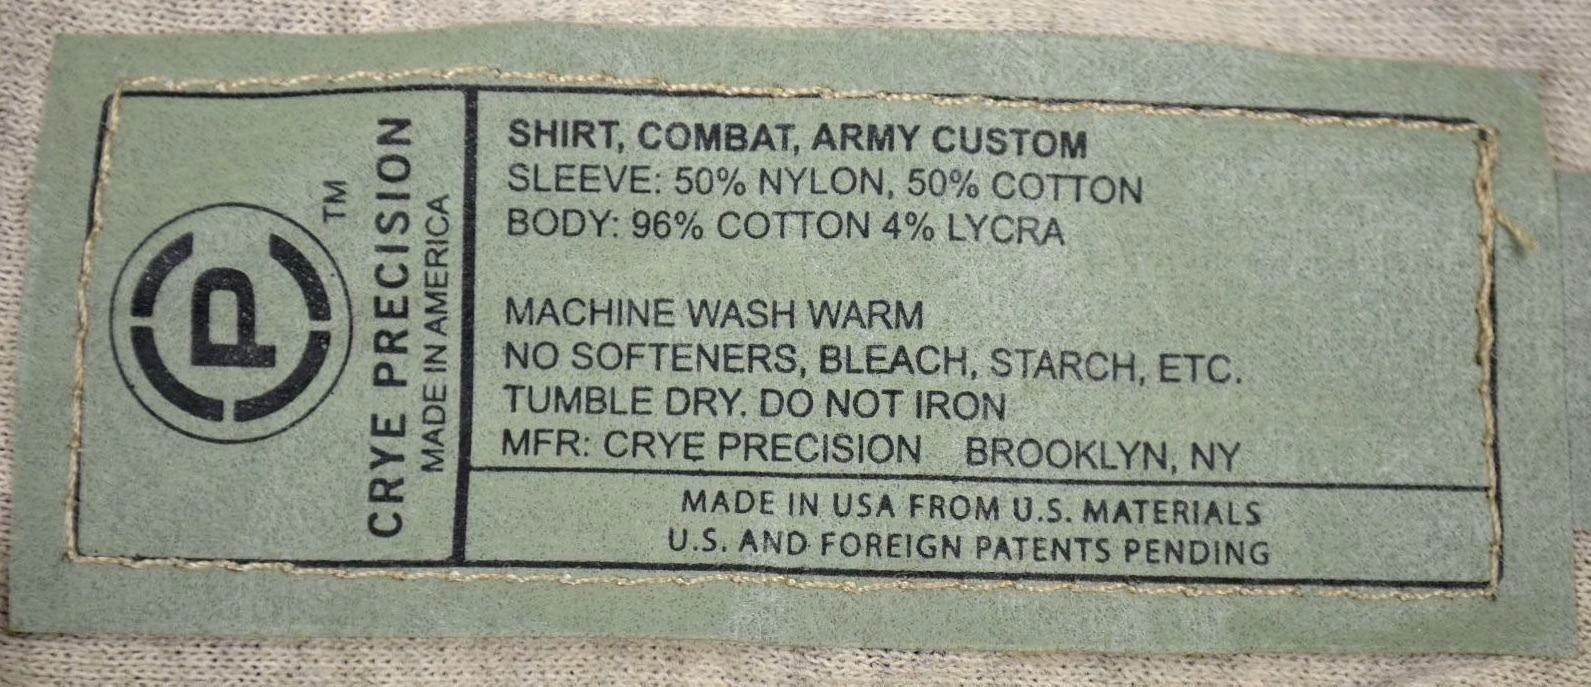 CRYE-PRECISION-COMBAT-SHIRT-AC-ARMY-CUSTOM-G2-GEN-II-MULTICAM-SF-DIFFERENT-SIZES-201453134109-9.jpg